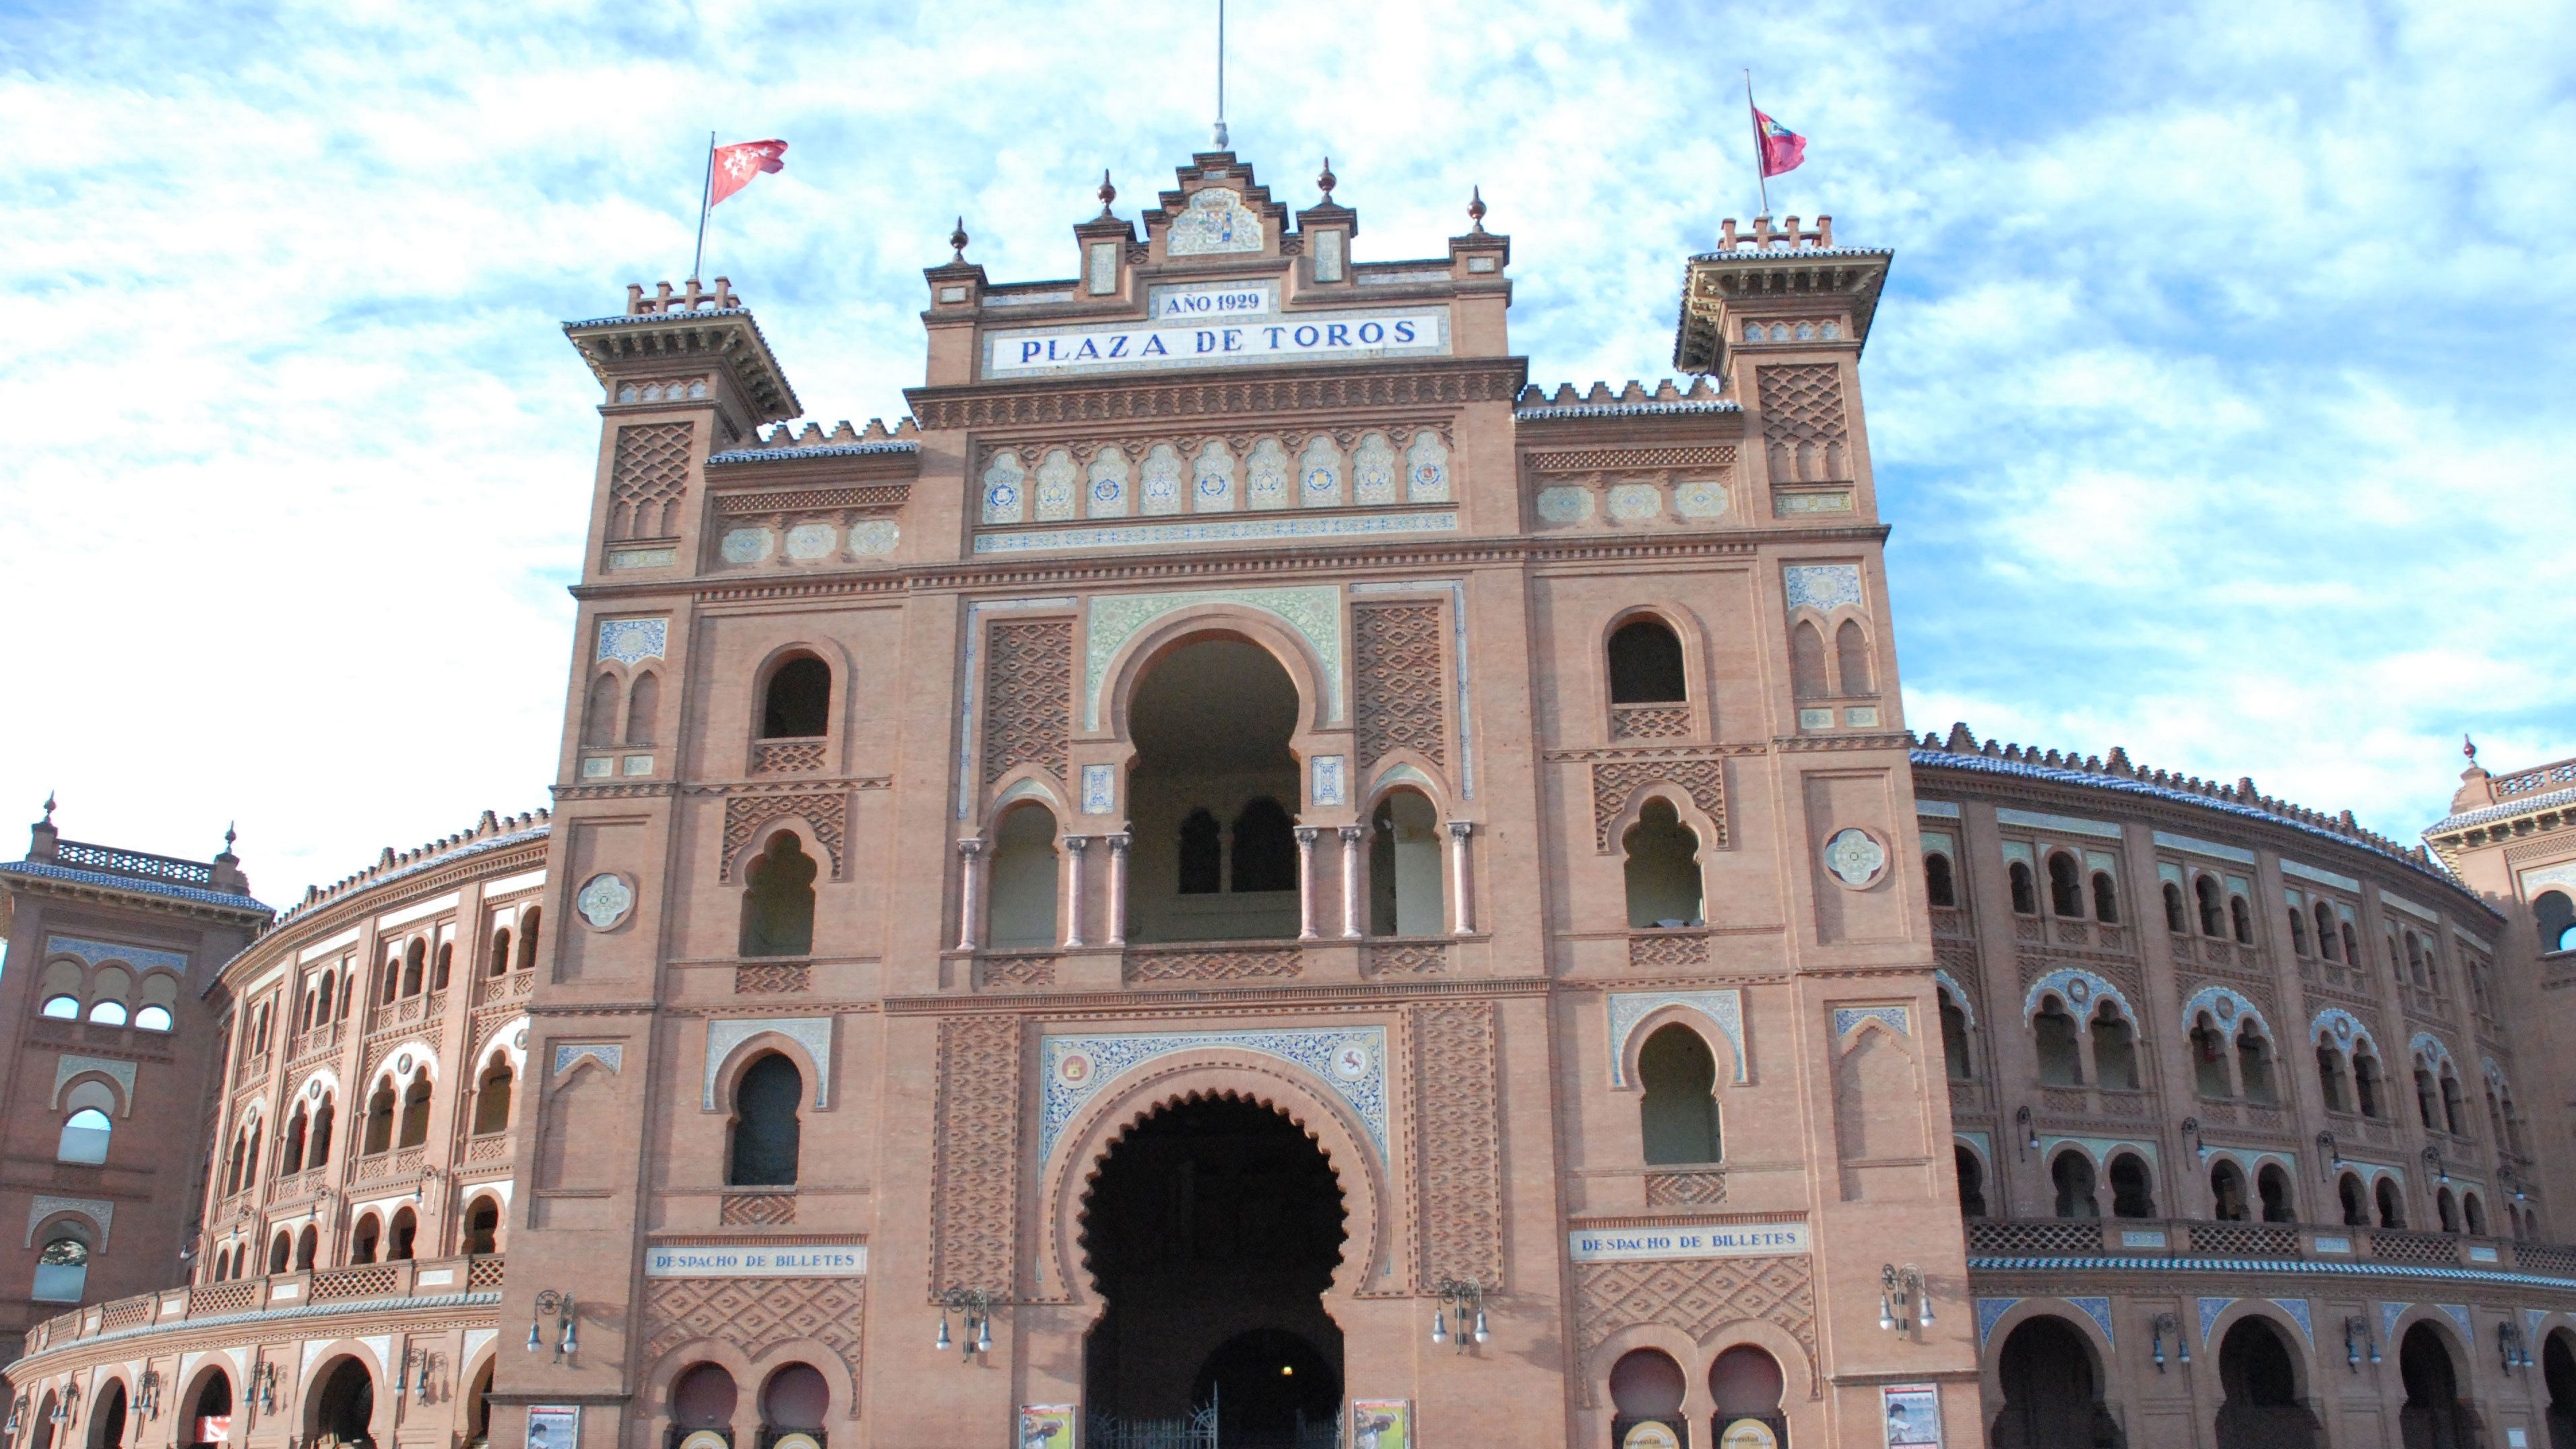 Close view of the front of the Las Ventas in Madrid